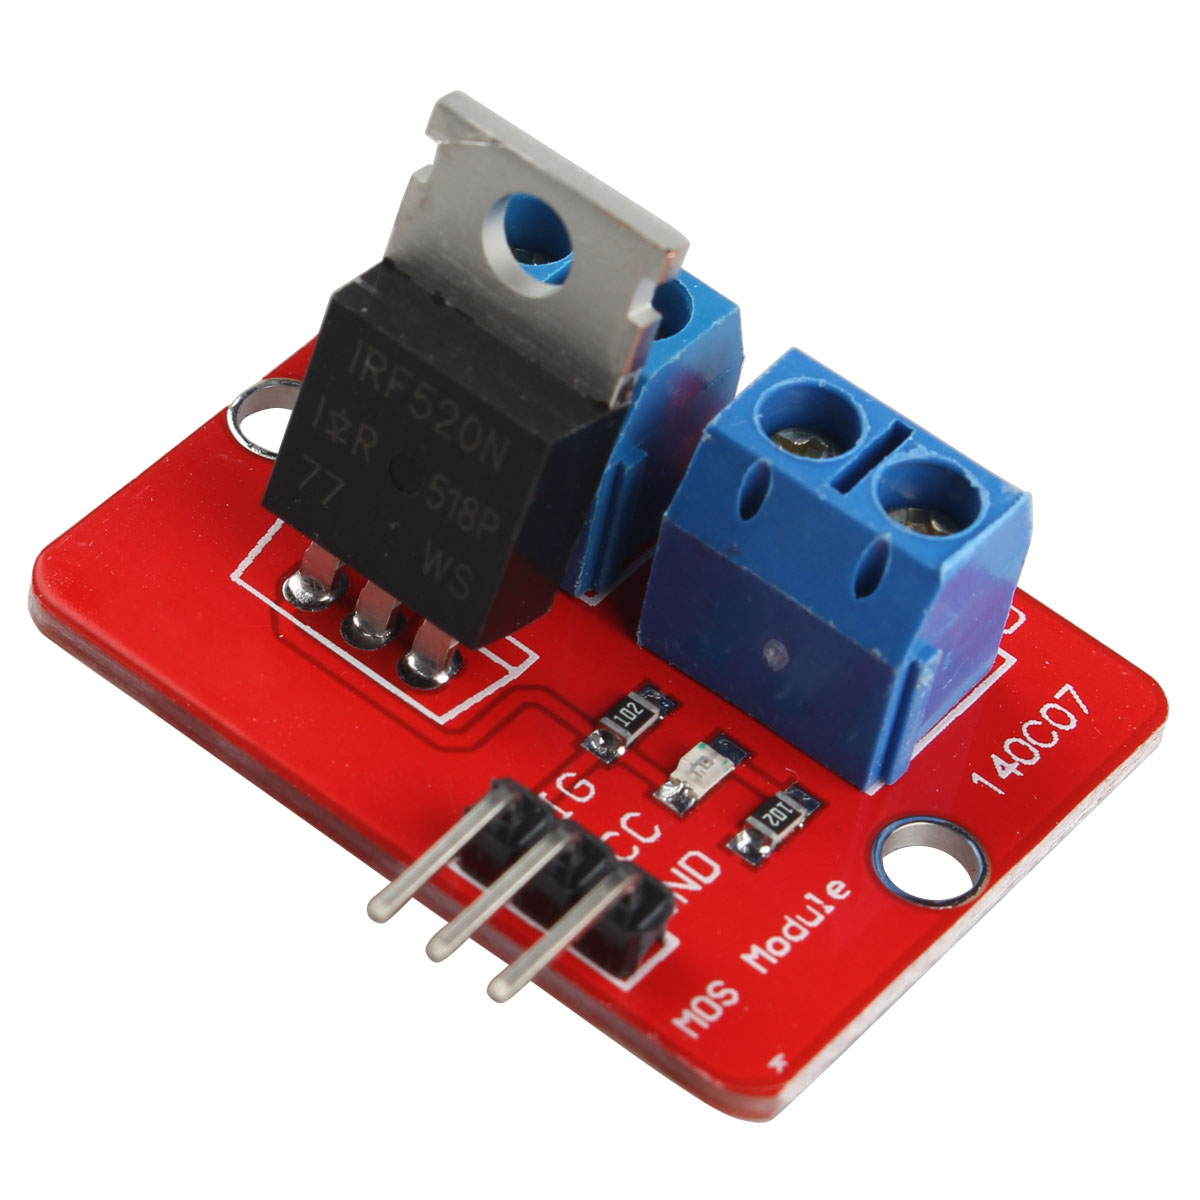 3.3V / 5V Drive Module Board for Arduino, MCU, ARM, Raspberry Pie